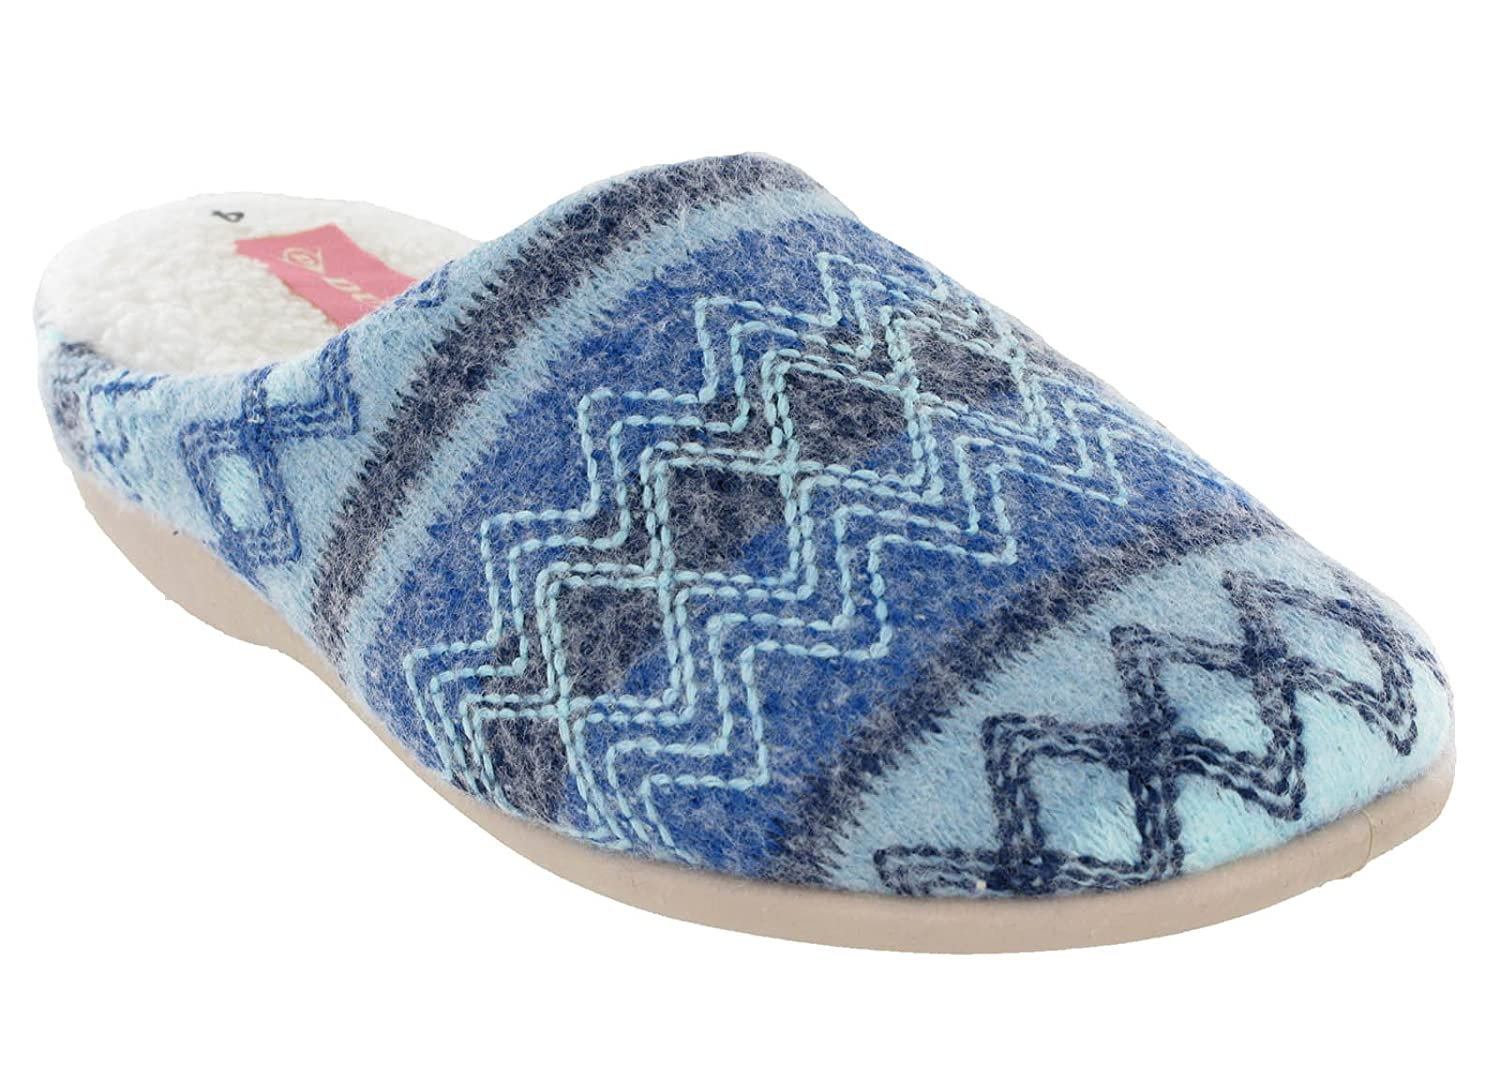 Dun , 5460 Chaussons Chaussons , pour femme Bleu 9973287 - latesttechnology.space